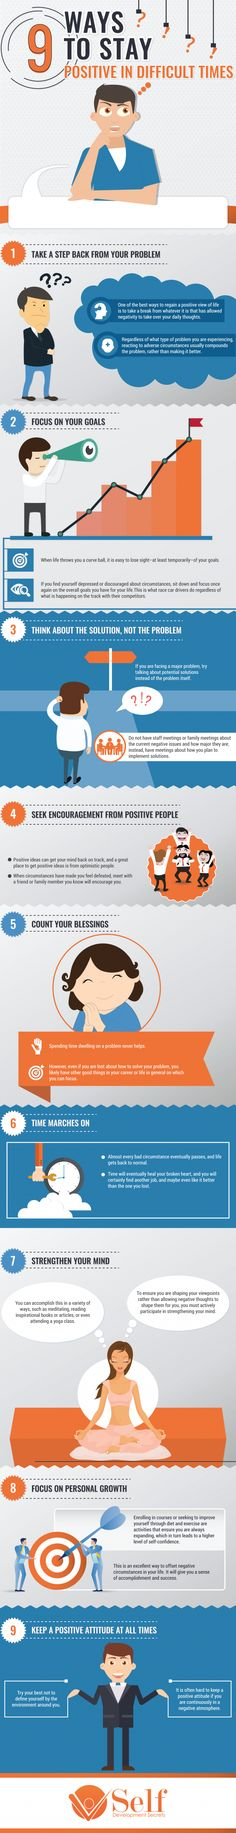 9 Ways to stay positive in difficult times Infographic describing the 9 steps it takes